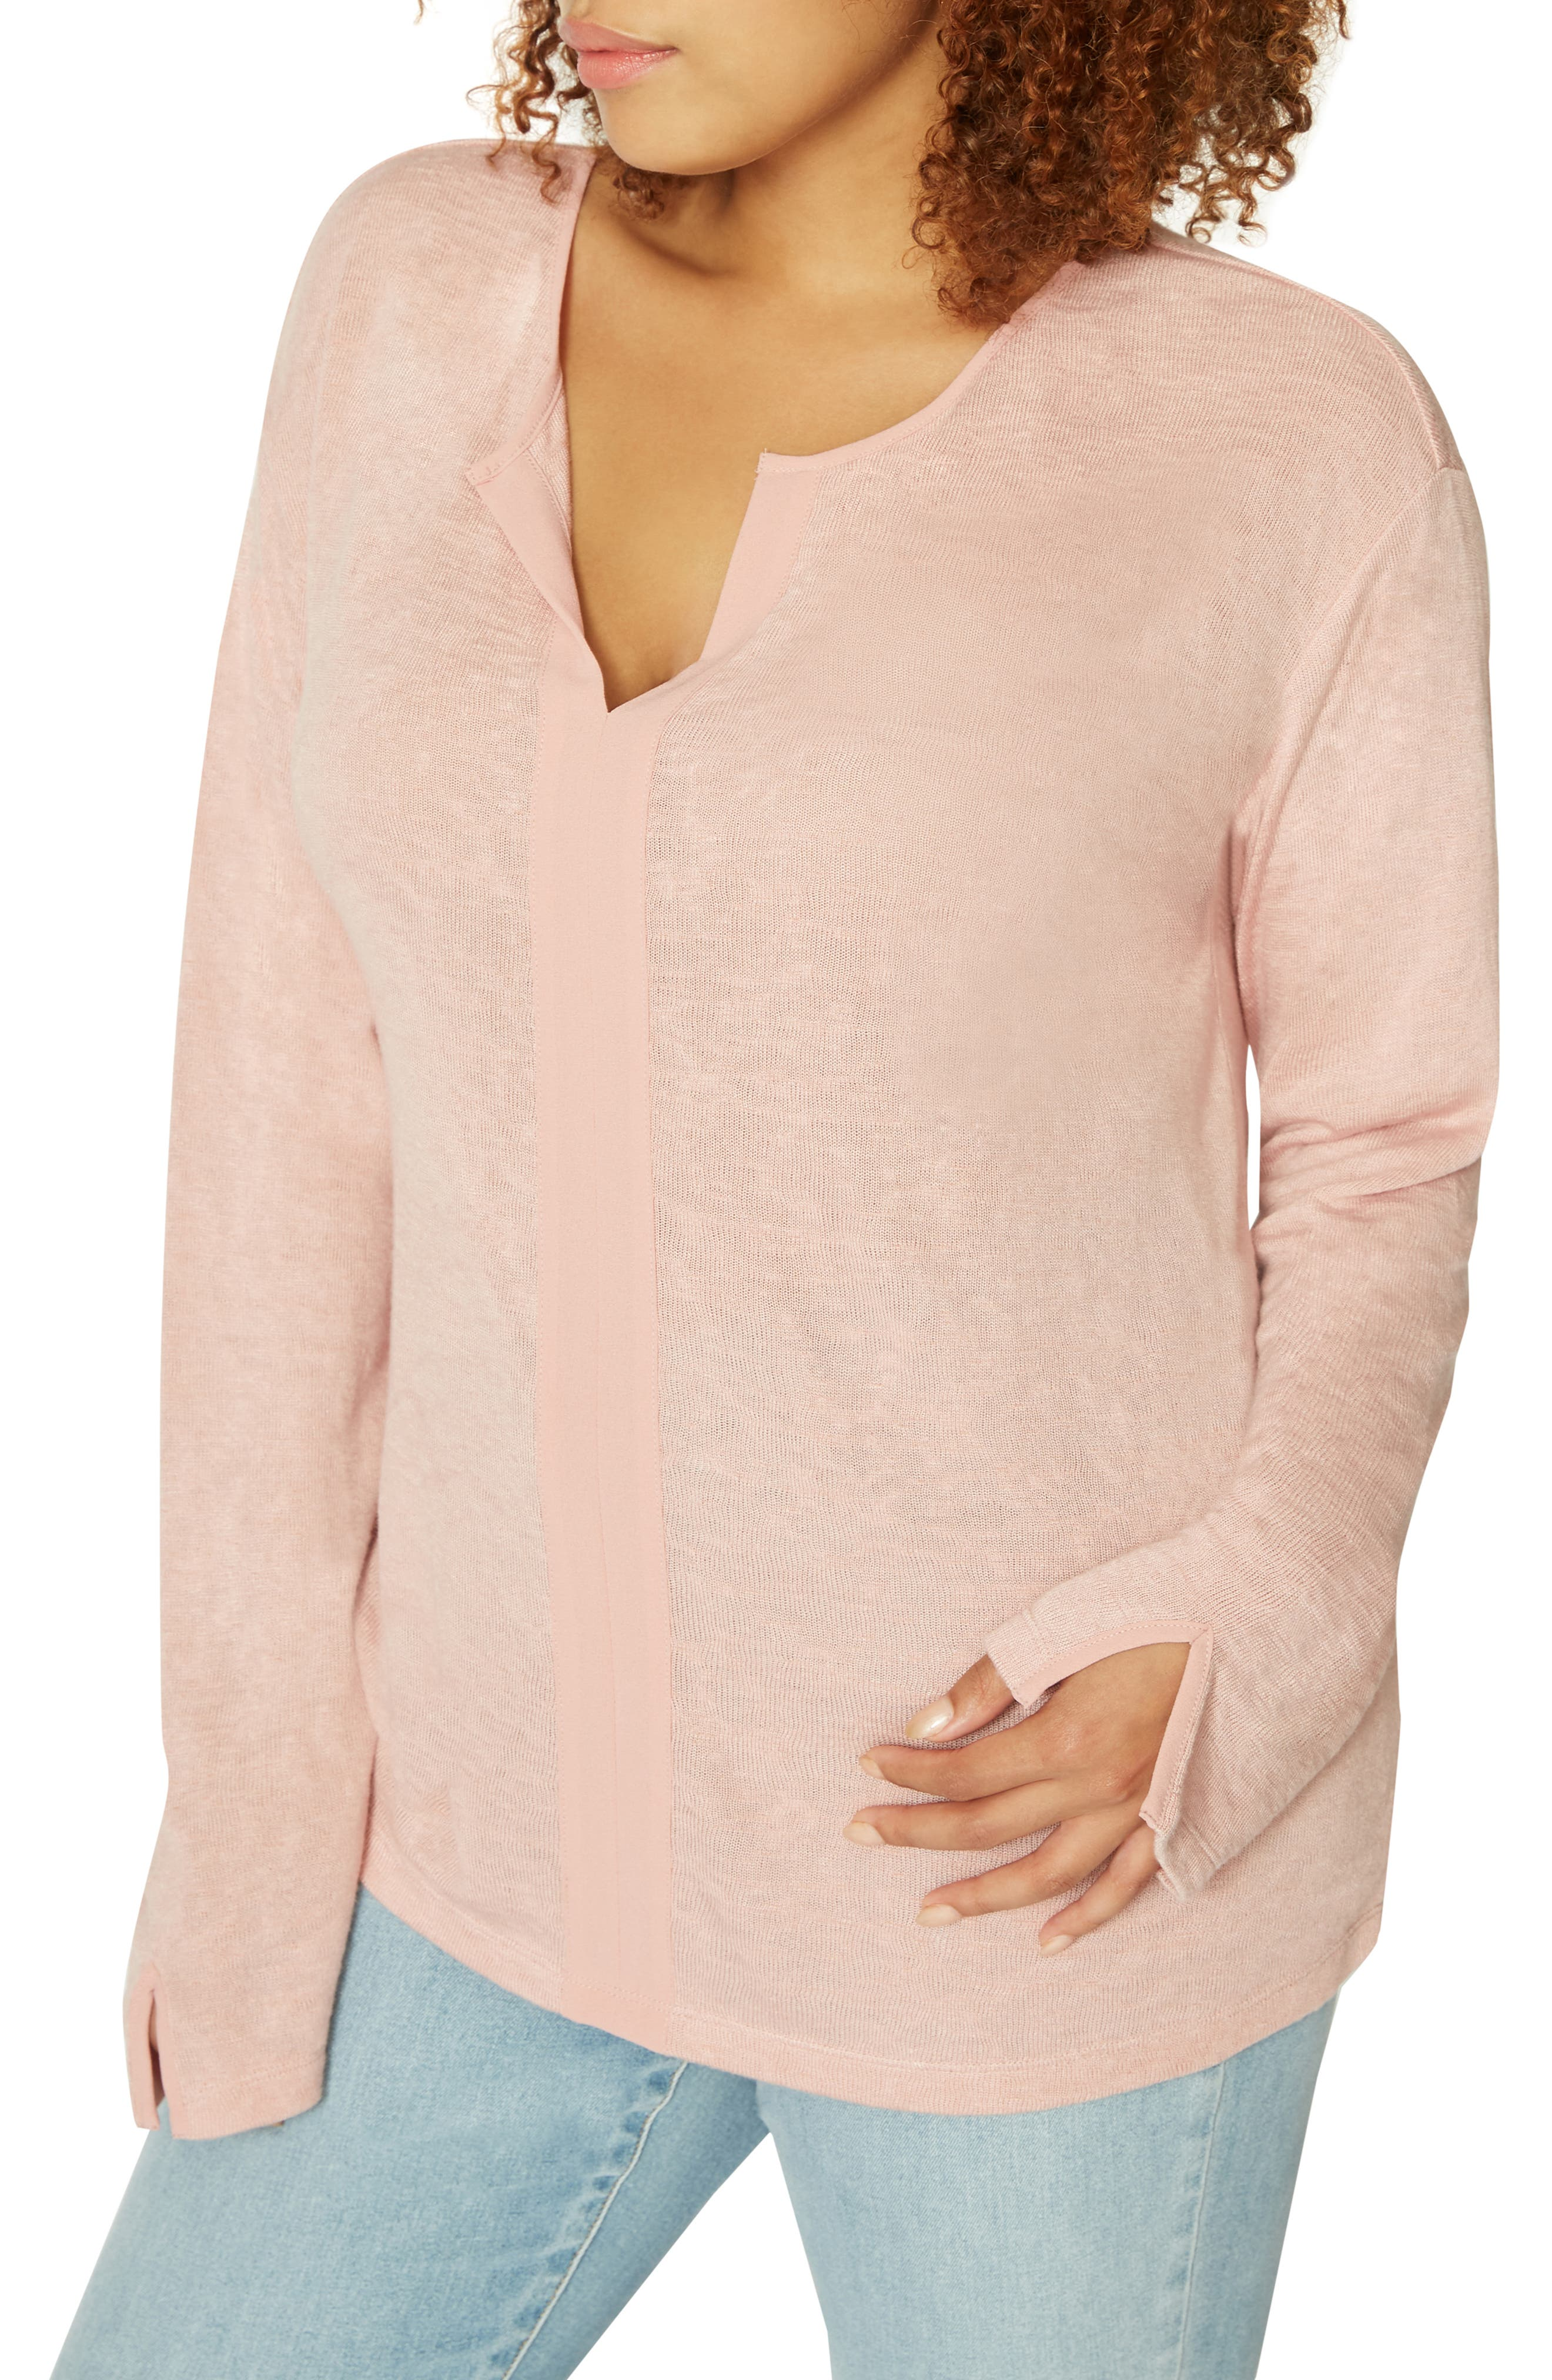 Sienna Mix Top,                             Alternate thumbnail 7, color,                             PINK SCOTCH